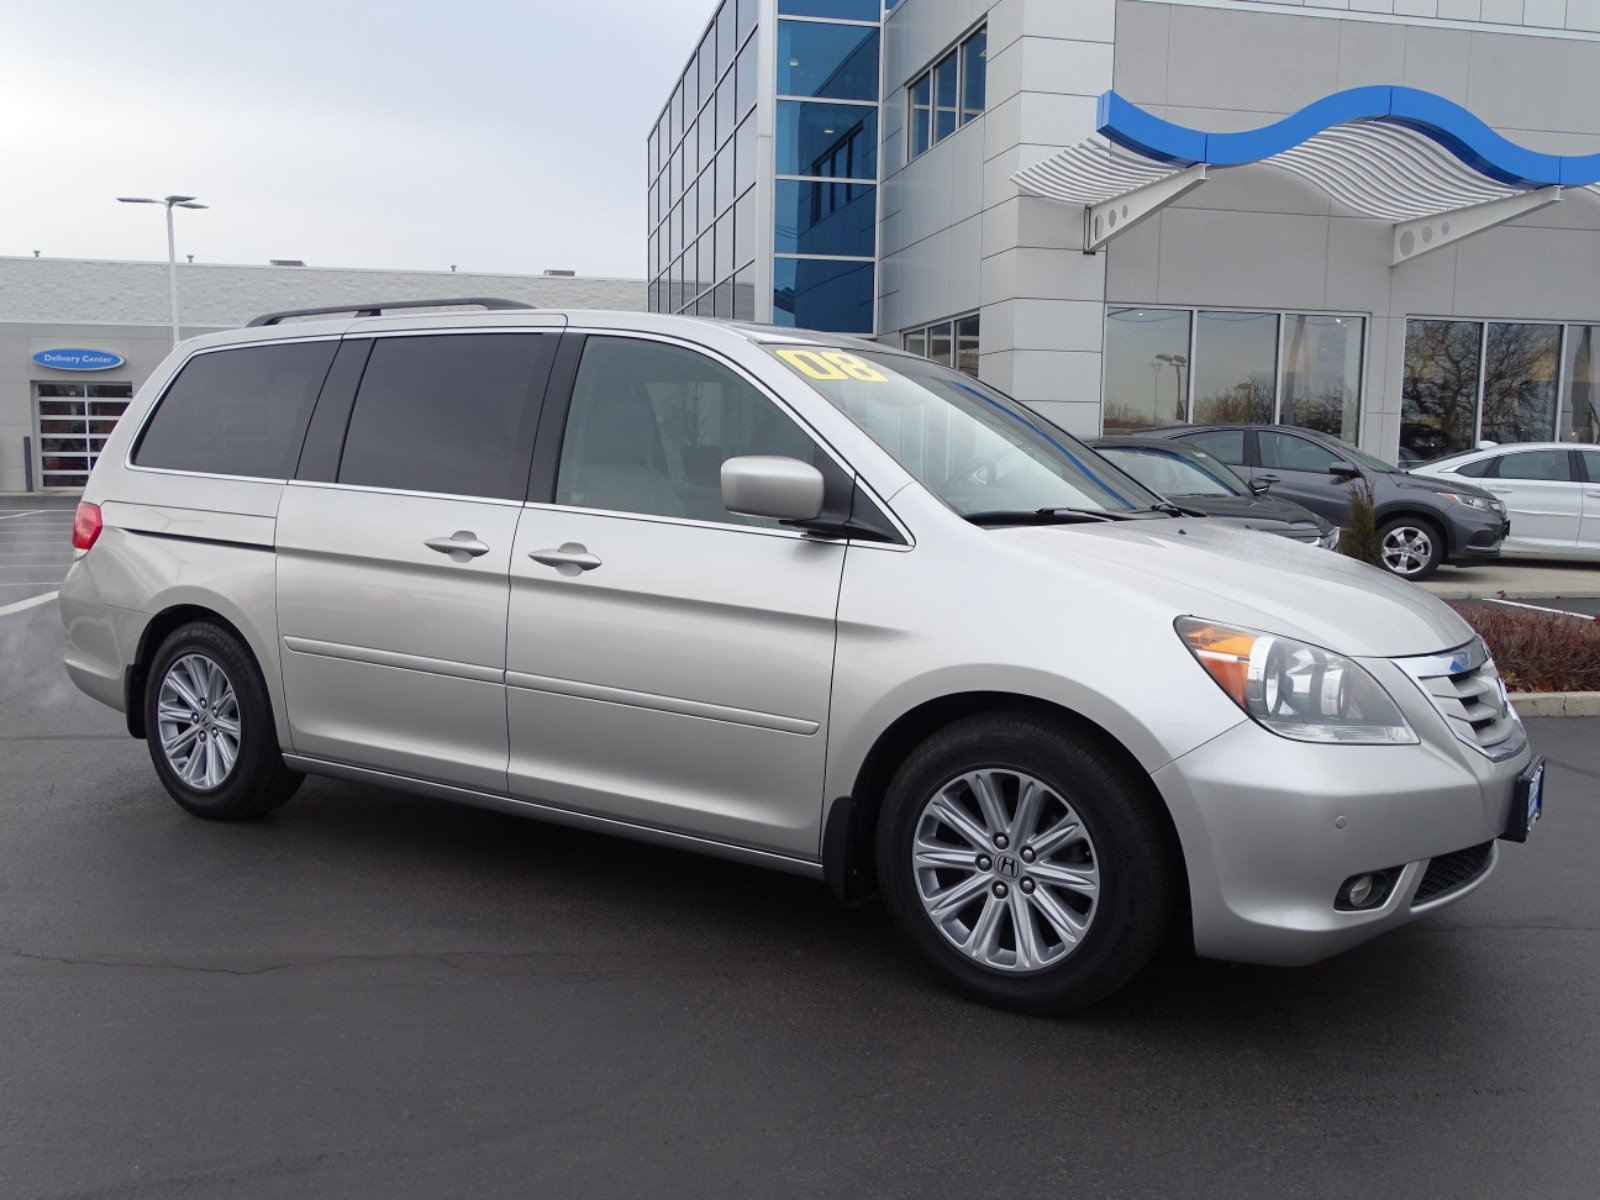 Pre-Owned 2008 Honda Odyssey Touring